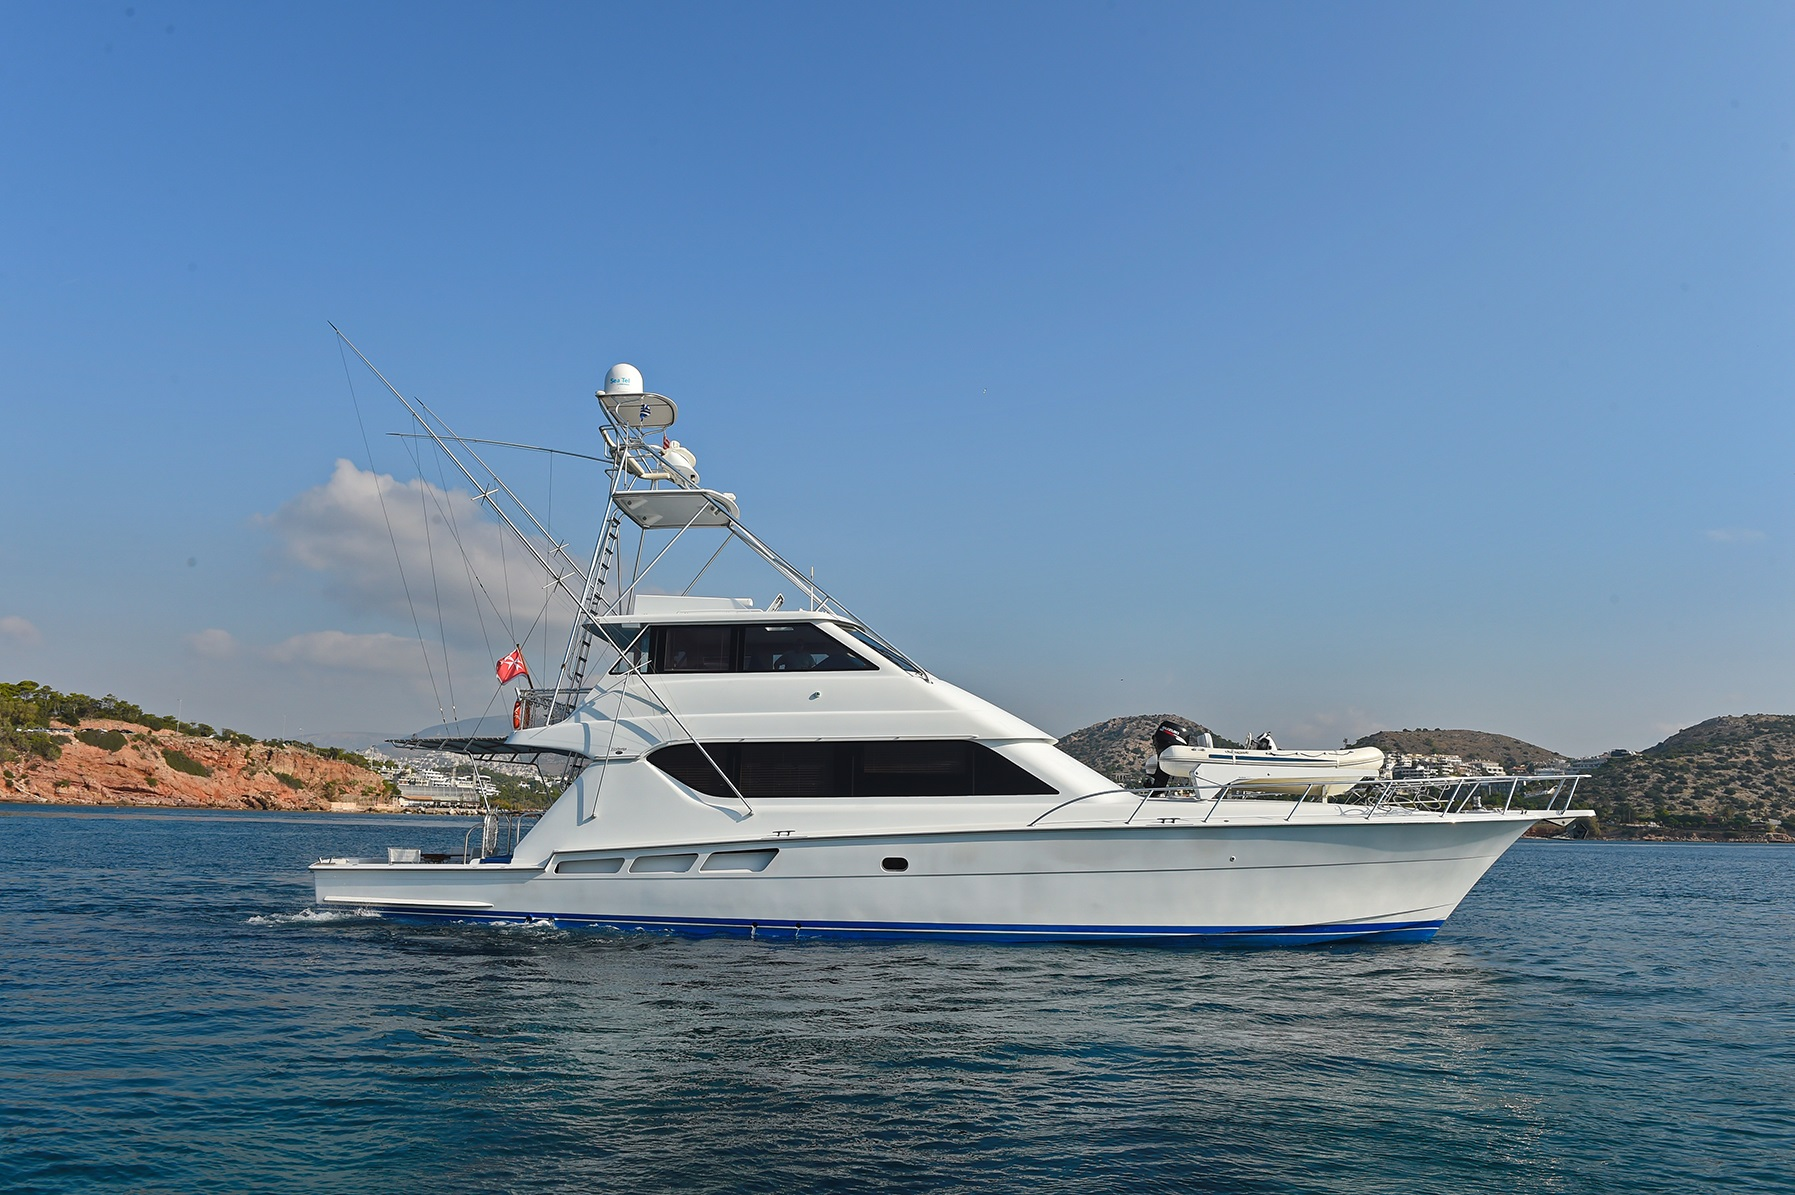 AMORE MIO 1 yacht for sale